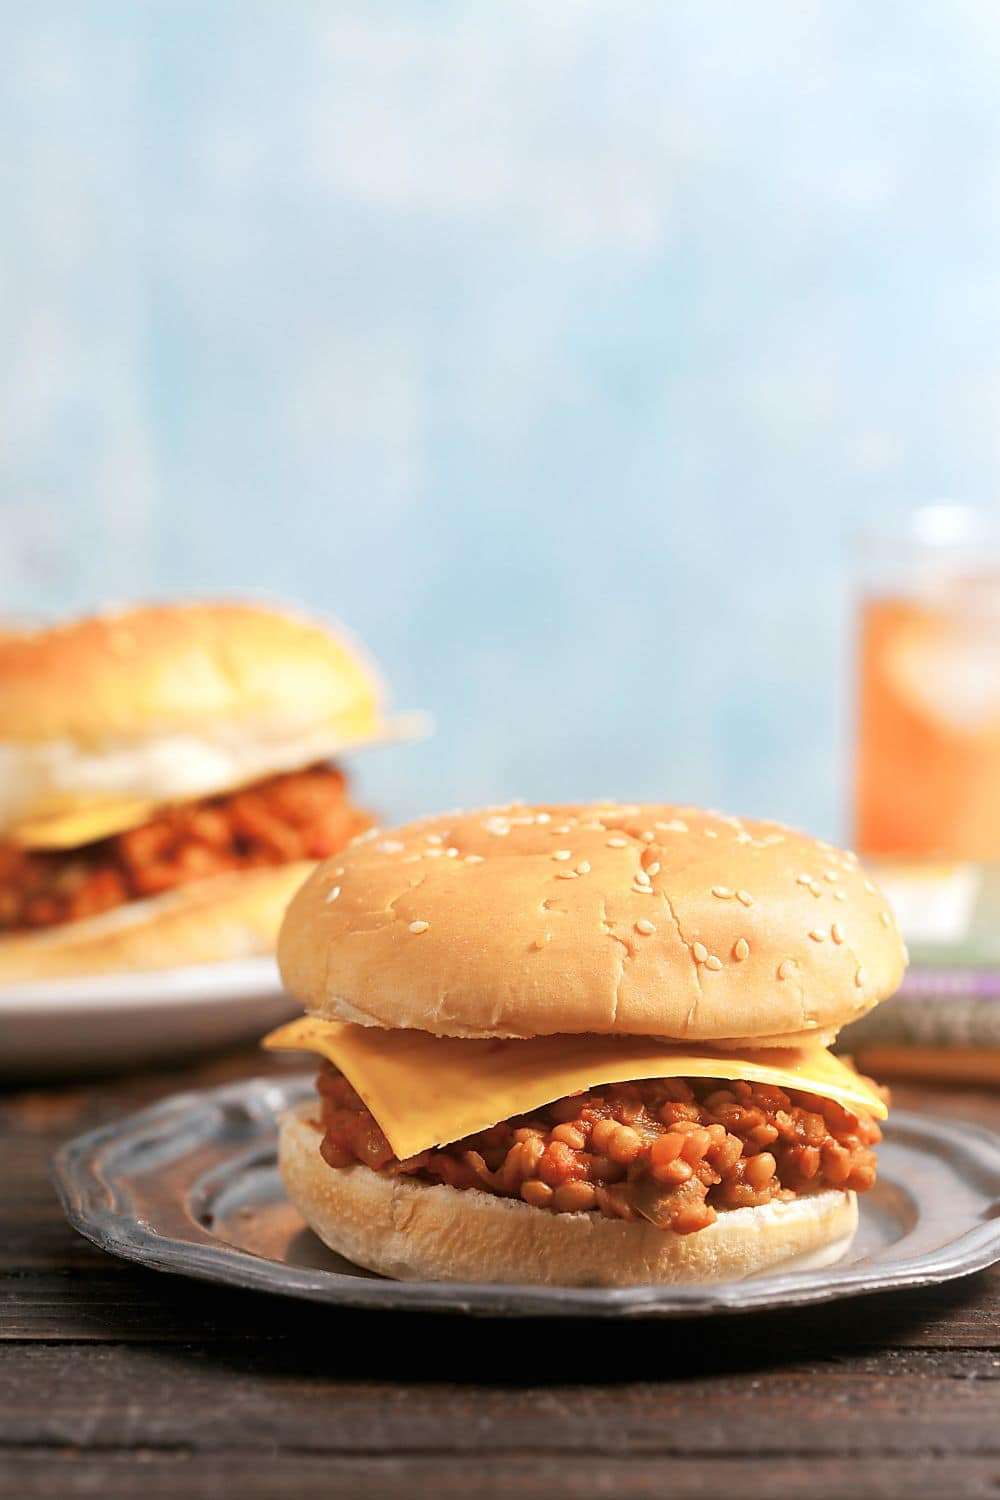 BBQ Lentil Sloppy Joes Recipe - Vegan